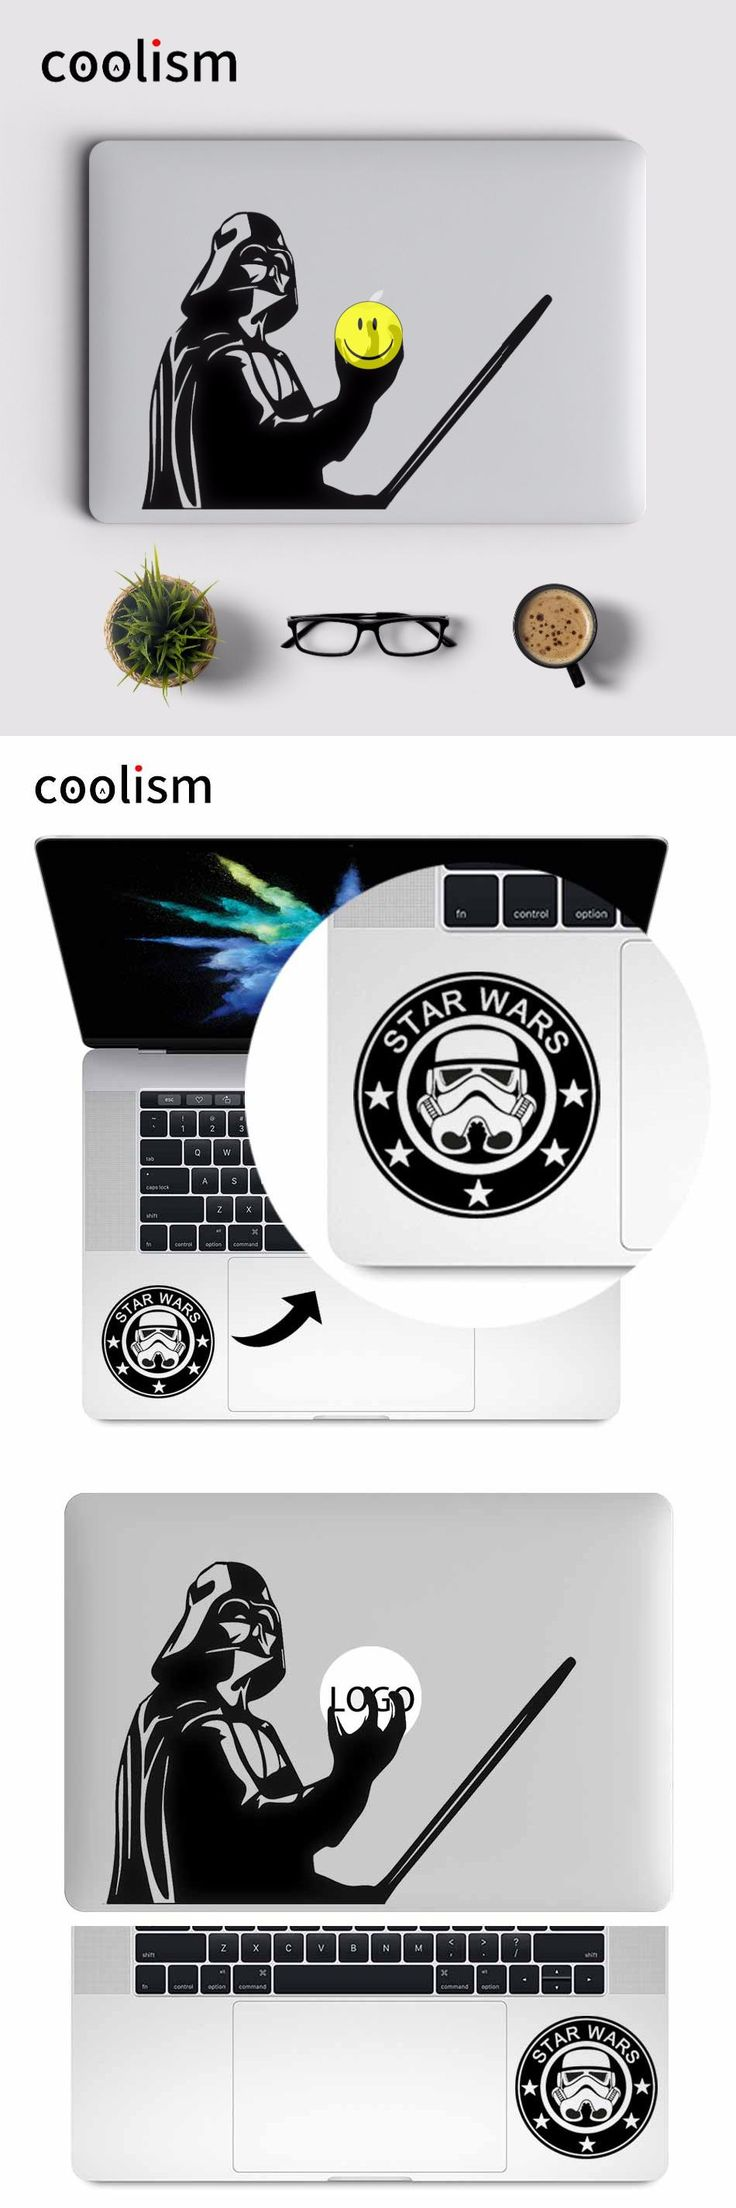 [Visit to Buy] Star Wars Darth Vader Laptop Sticker for MacBook Decal Air/Pro/Retina 11 12 13 15 inch Computer Mac skin Pegatina para notebook #Advertisement